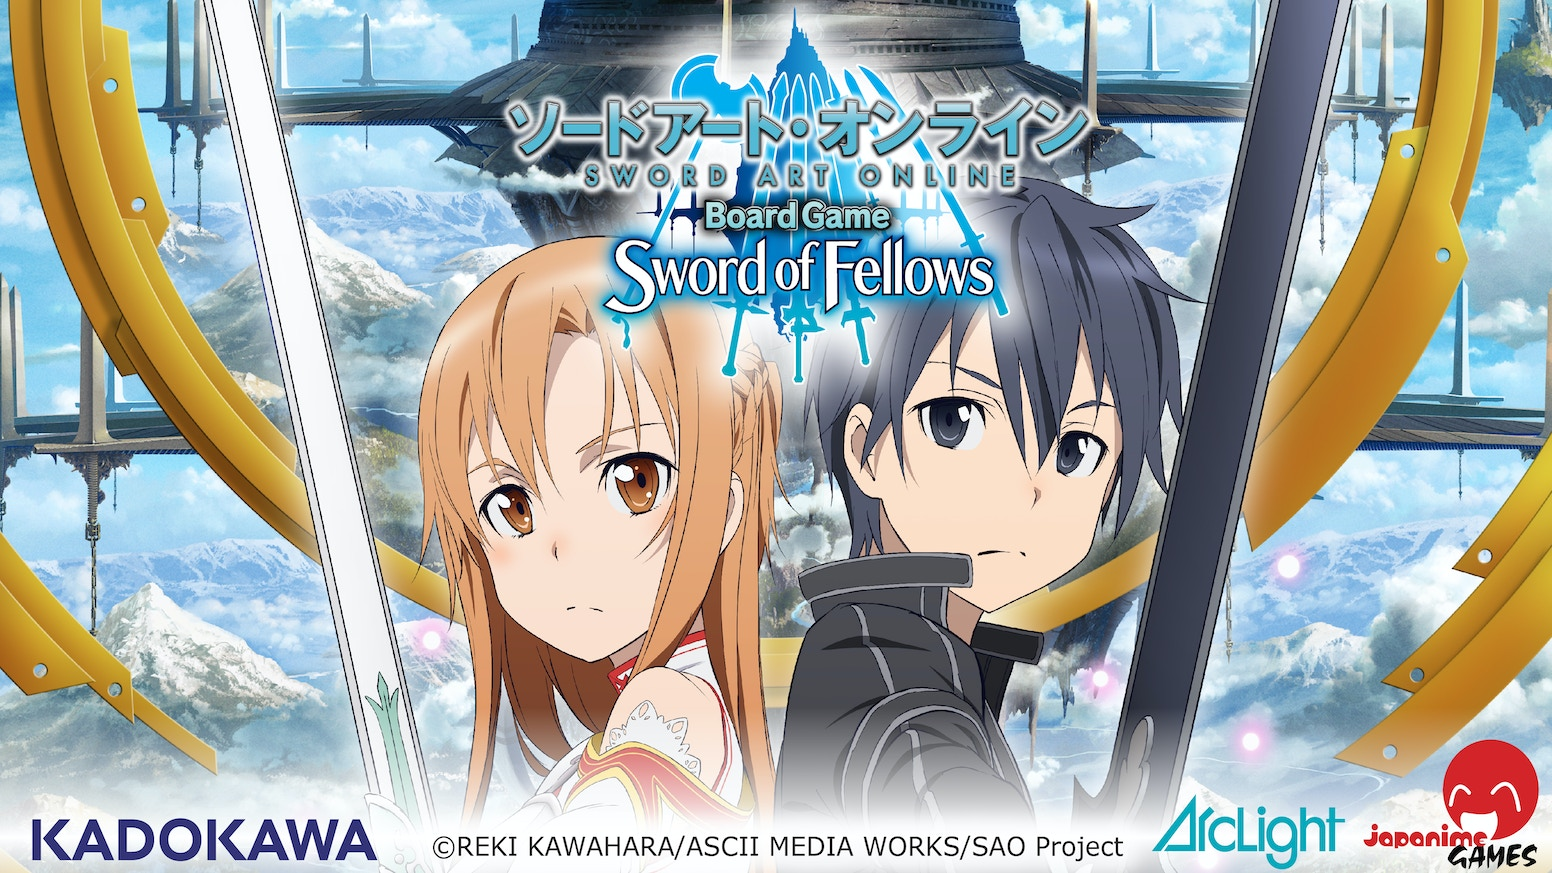 Enter the world of Sword Art Online! Defeat the enemies of <<Aincrad>> in this Cooperative Dice Based Battle Game for 1-4 players!